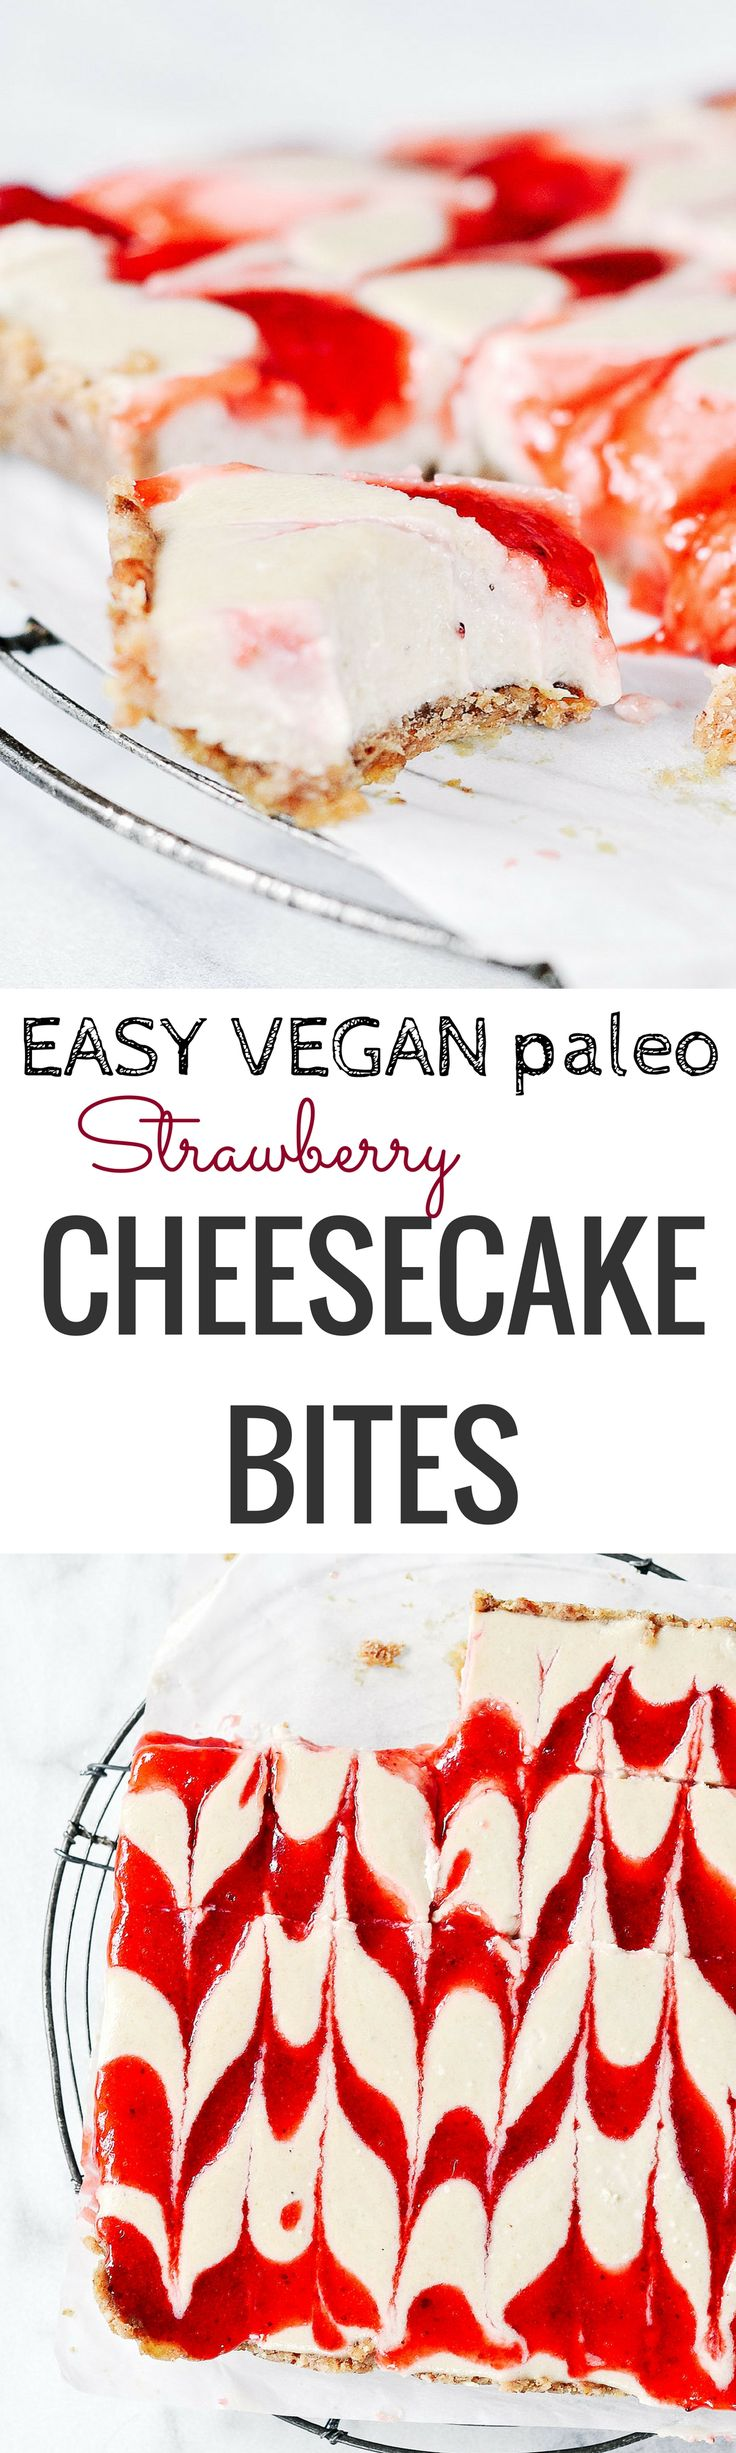 Easy Vegan Strawberry Cheesecake Bites. Raw paleo cheesecake recipe. 5 Ingredients. No bake cashew cheesecake. Best gluten free vegan cheesecake. Raw paleo cheesecake recipe. No bake strawberry cheesecake recipe.